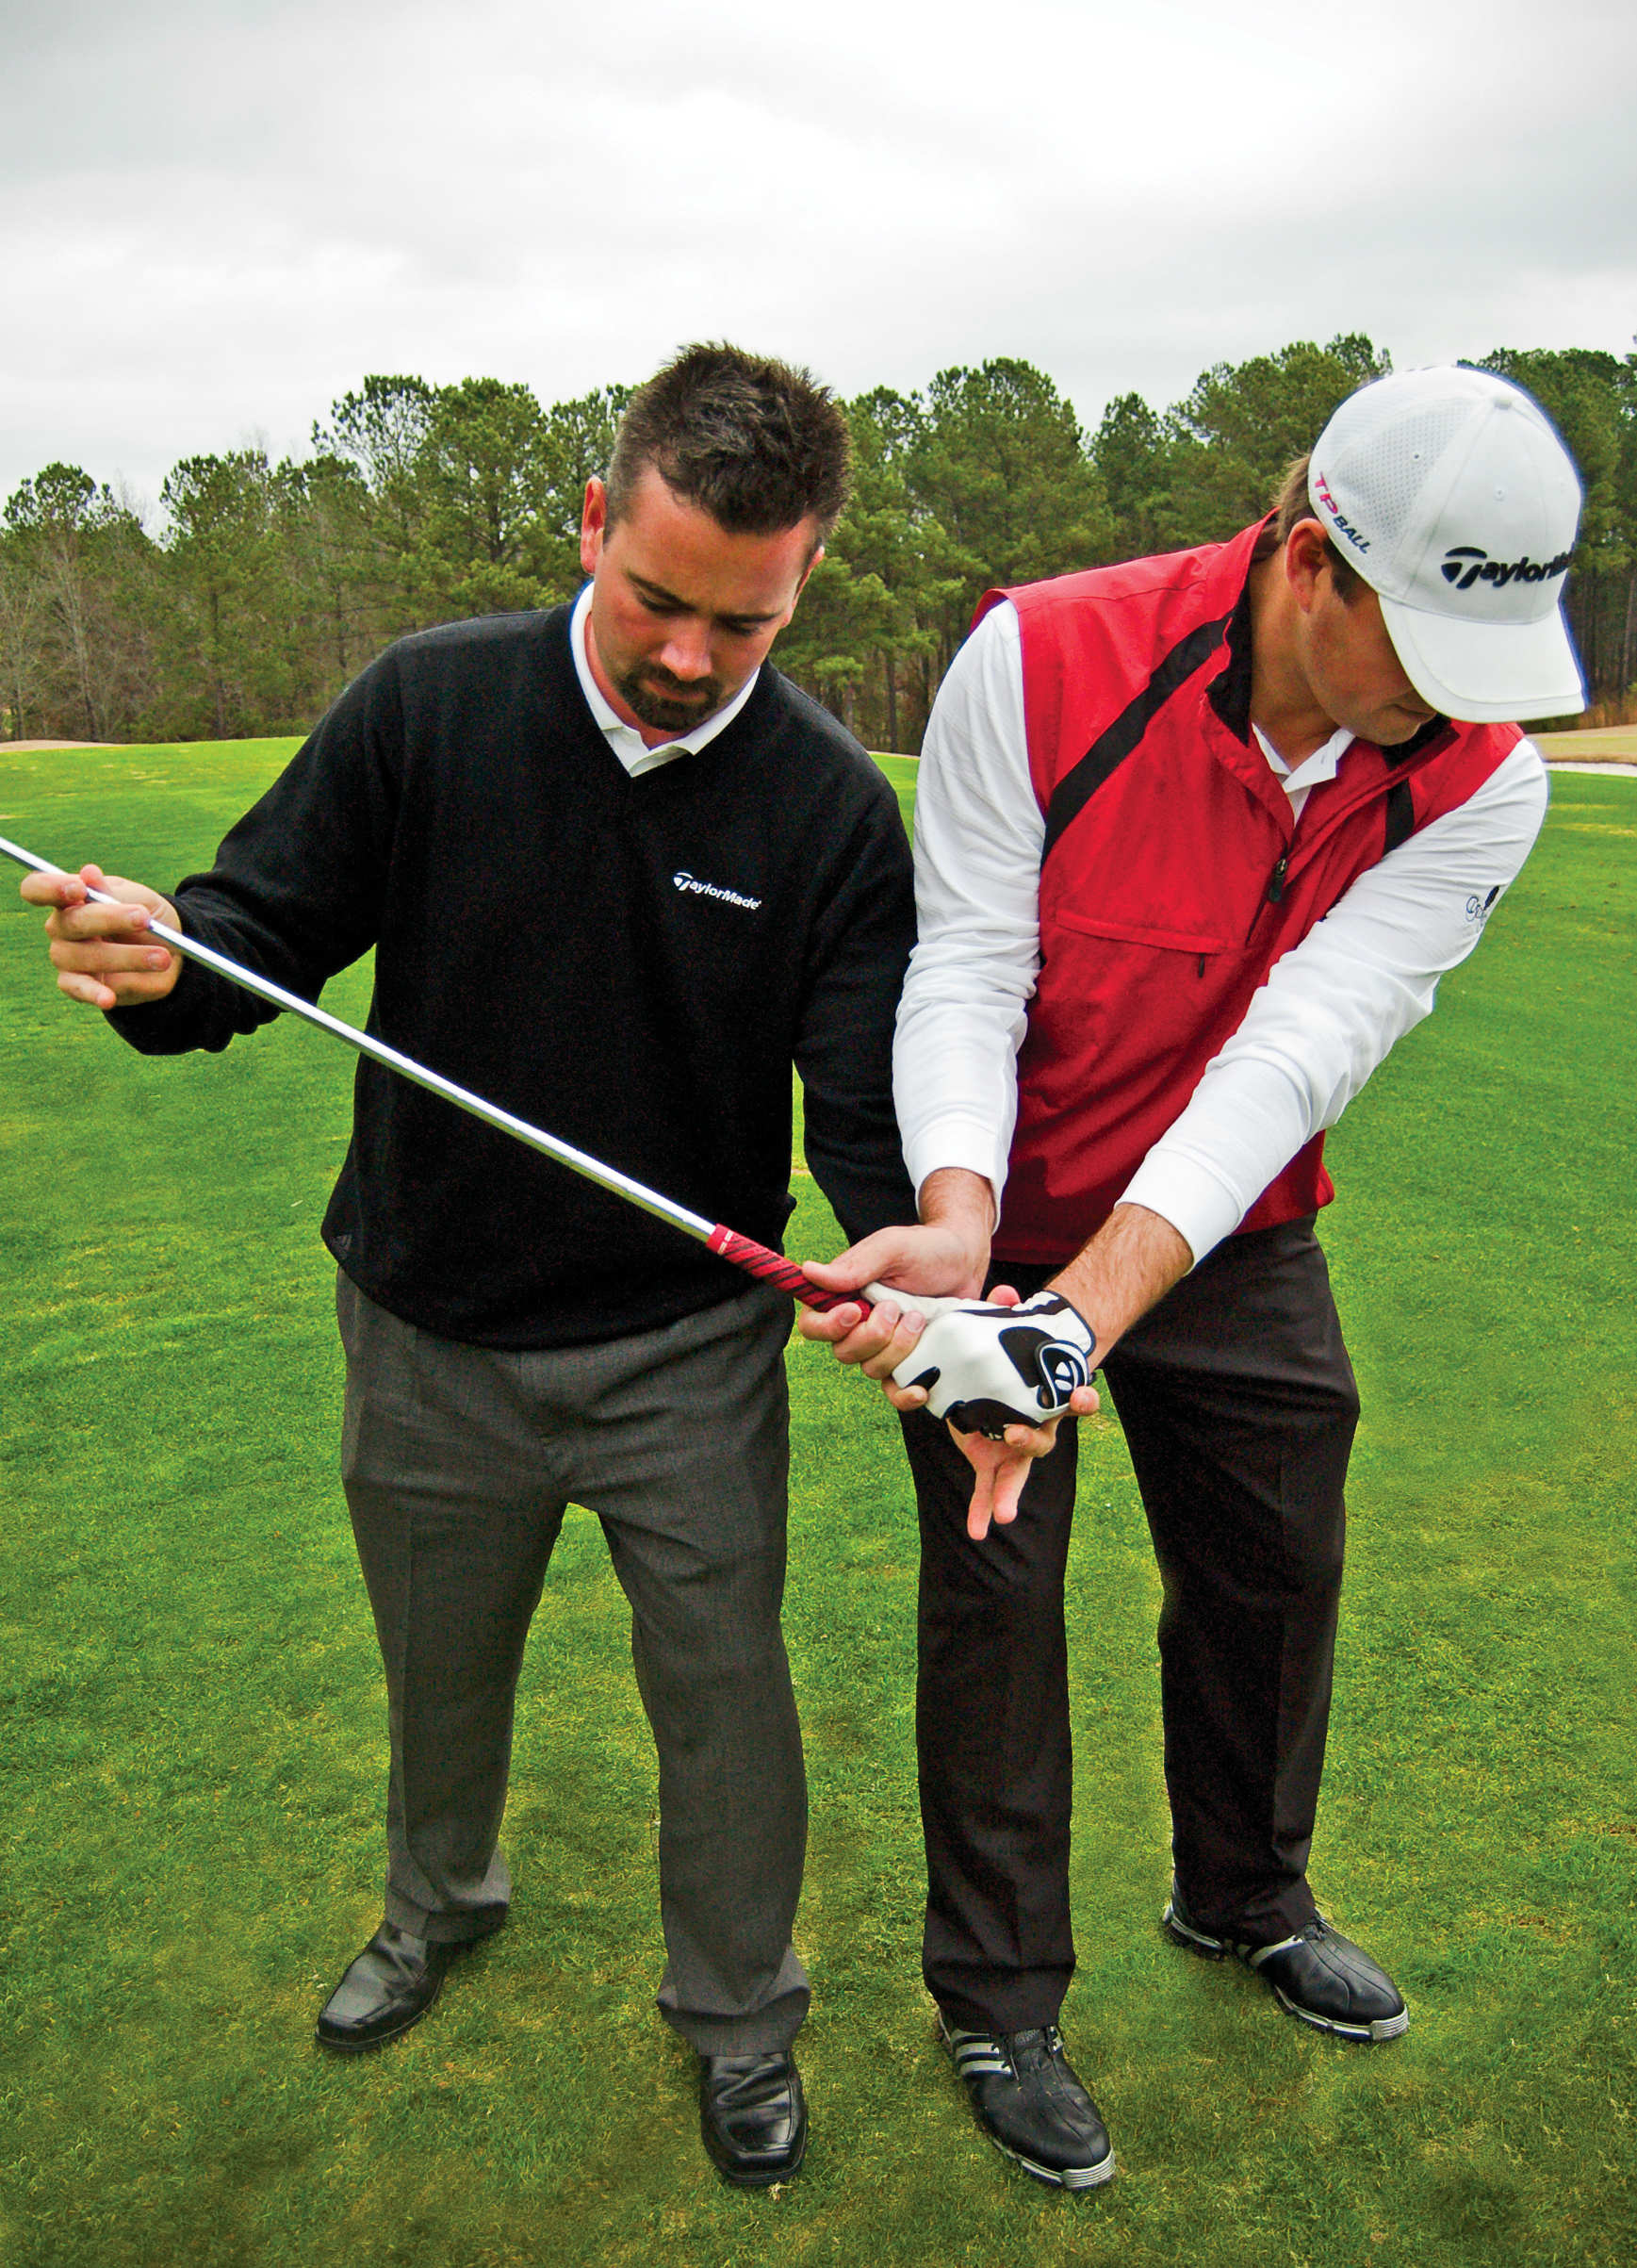 Charles McLendon works with 2010 PGA Tour rookie Blake Adams at Reynolds Plantation.